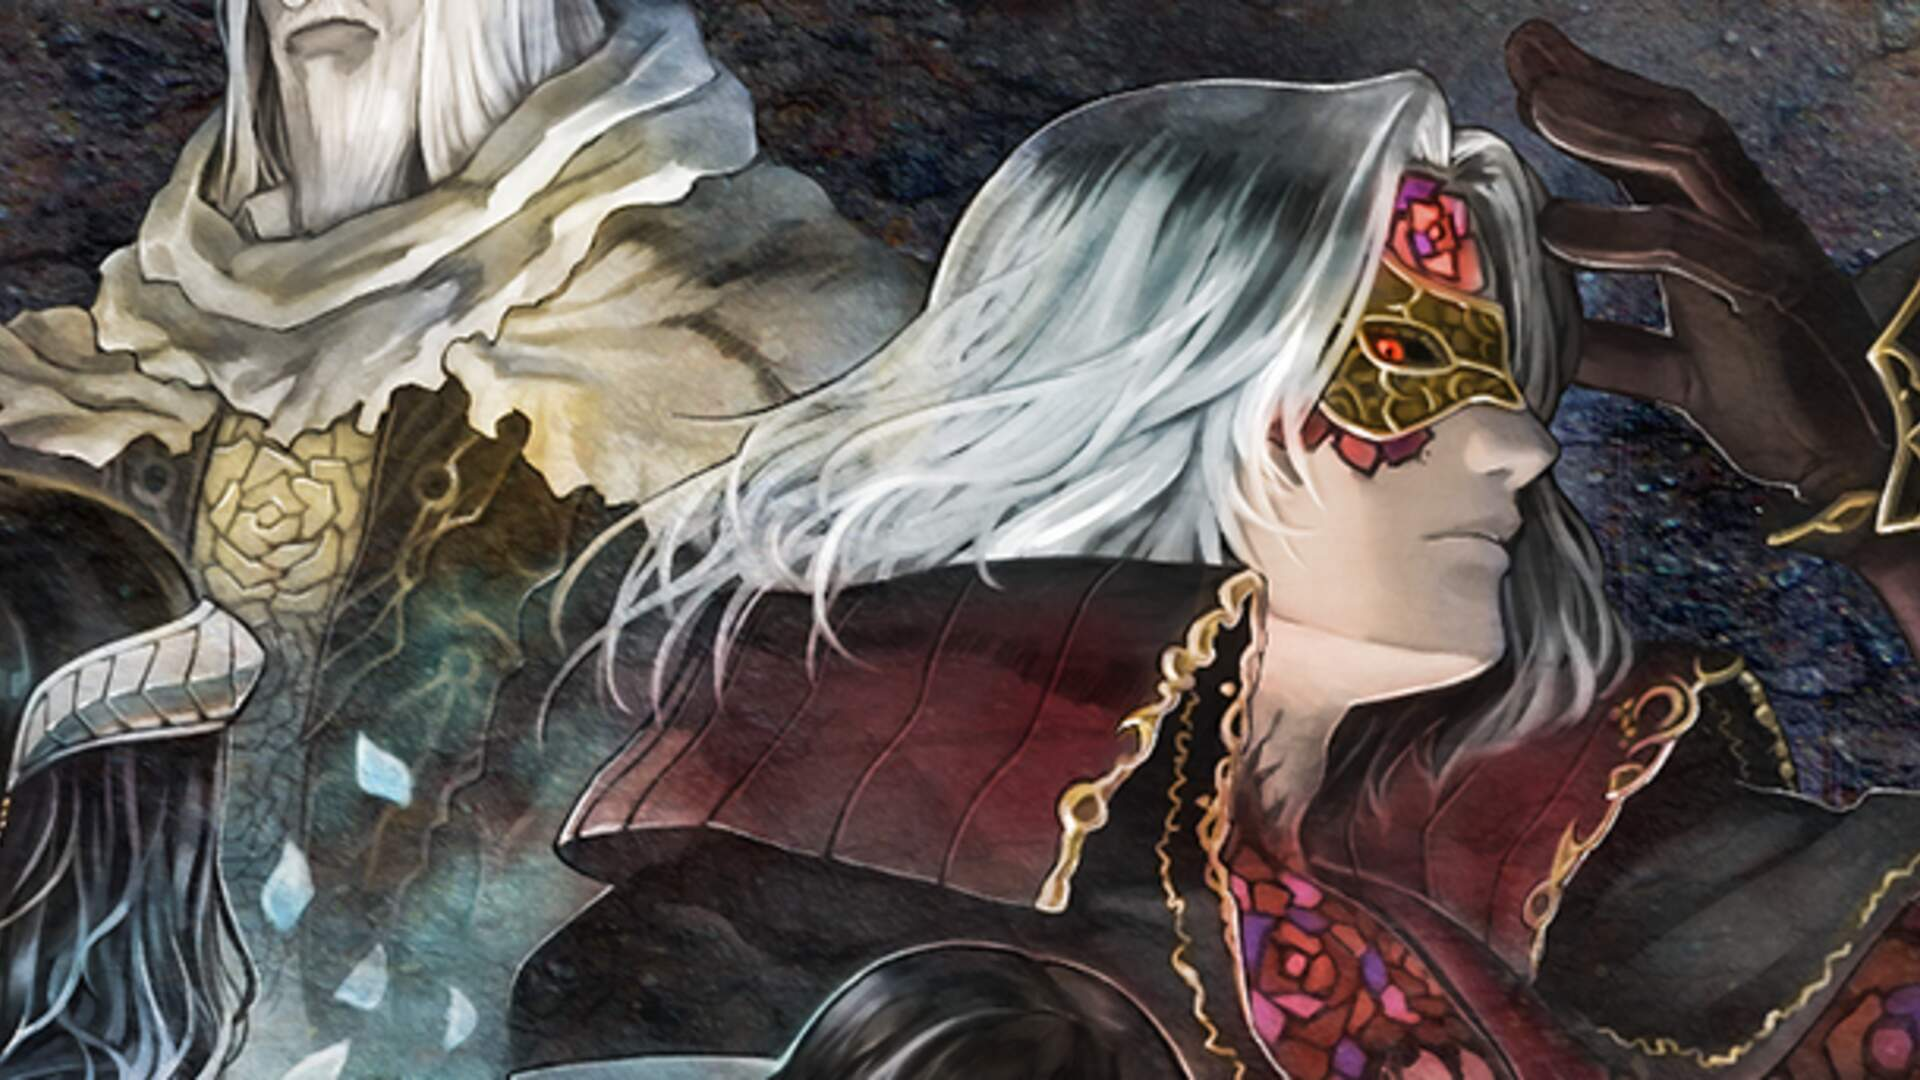 Bloodstained: Curse of the Moon Could Turn out to Be the Best Modern Castlevania Game